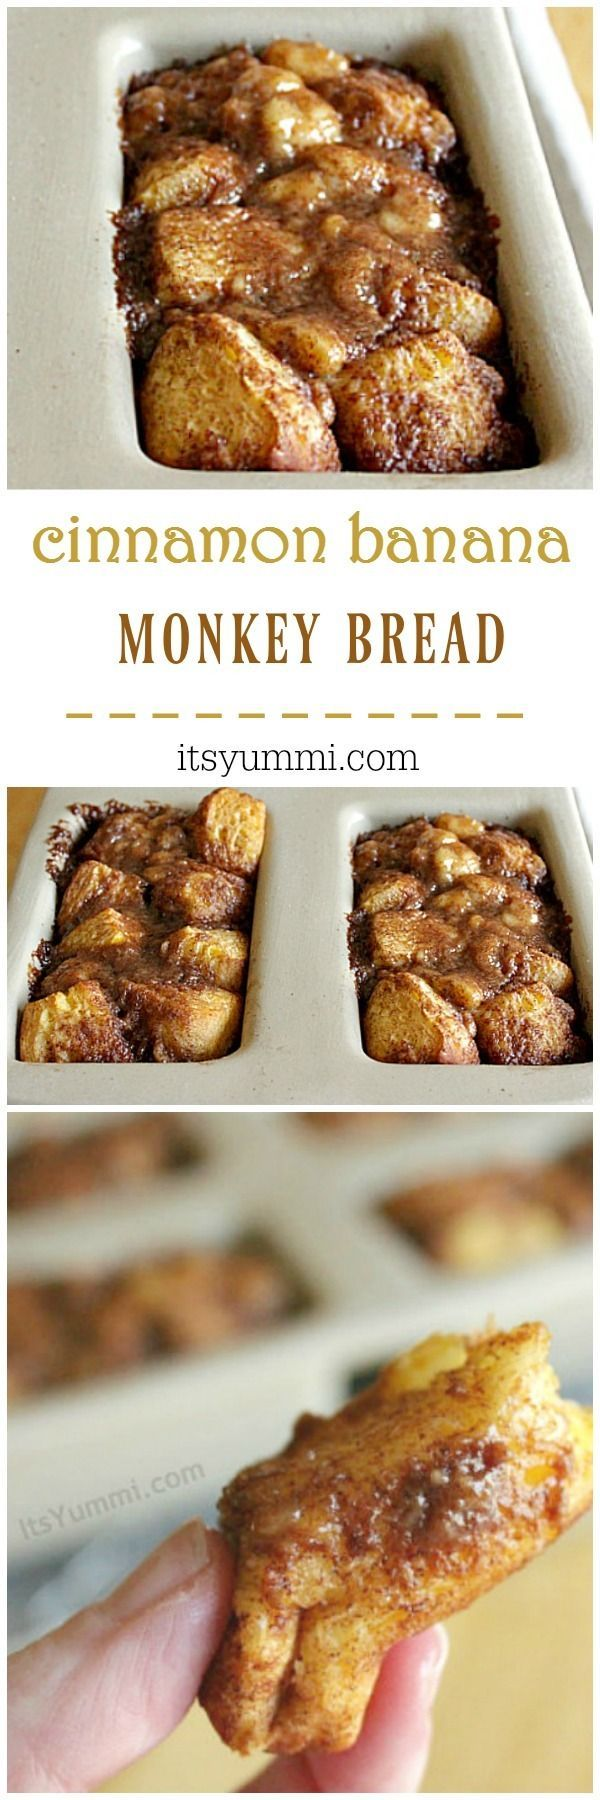 Cinnamon banana monkey bread is a sweet breakfast or brunch recipe! Flaky biscuit dough, sweetened with bananas and cinnamon sugar glaze. | Easy recipe from @itsyummi